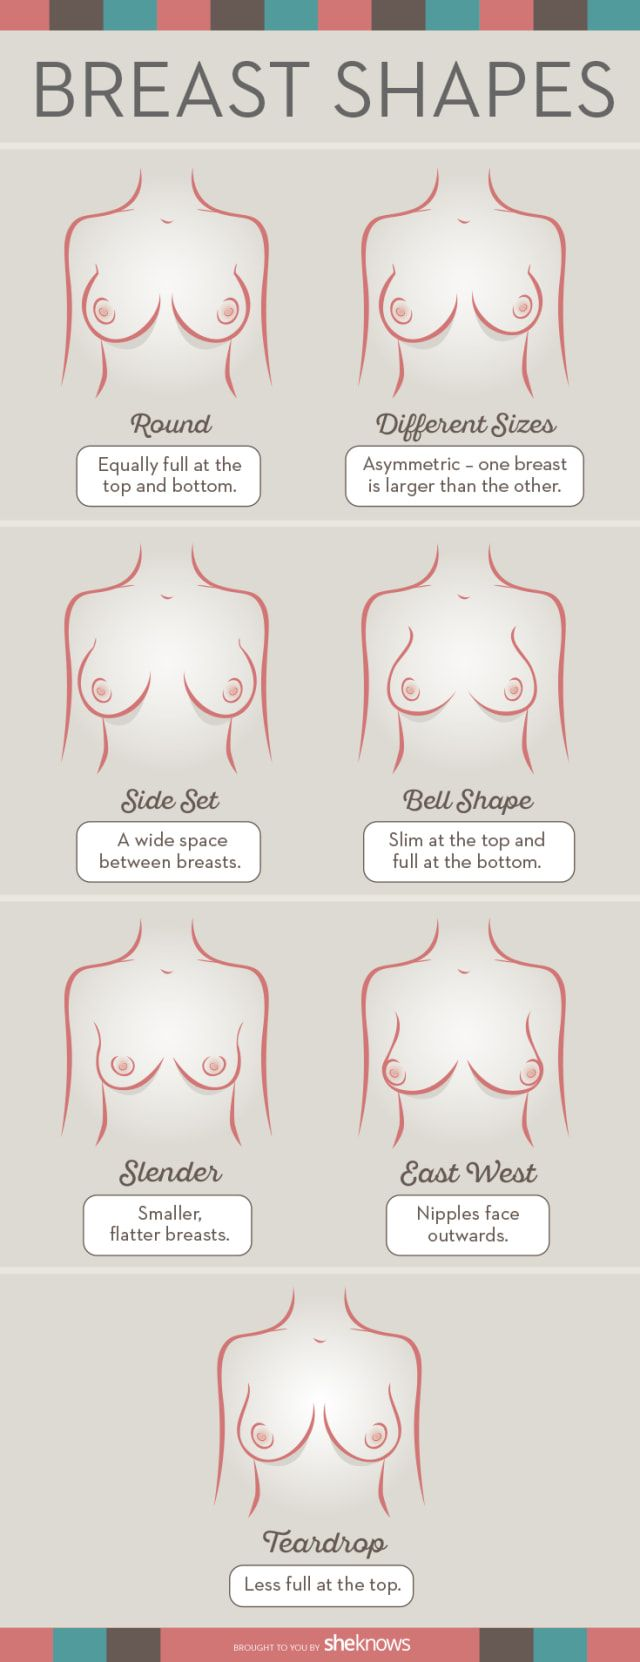 How To Determine Your Breast Shape To Find Your Perfect Bra! http://thecurvyfashionista.com/2016/08/how-to-determine-your-breast-shape-to-find-your-perfect-bra/